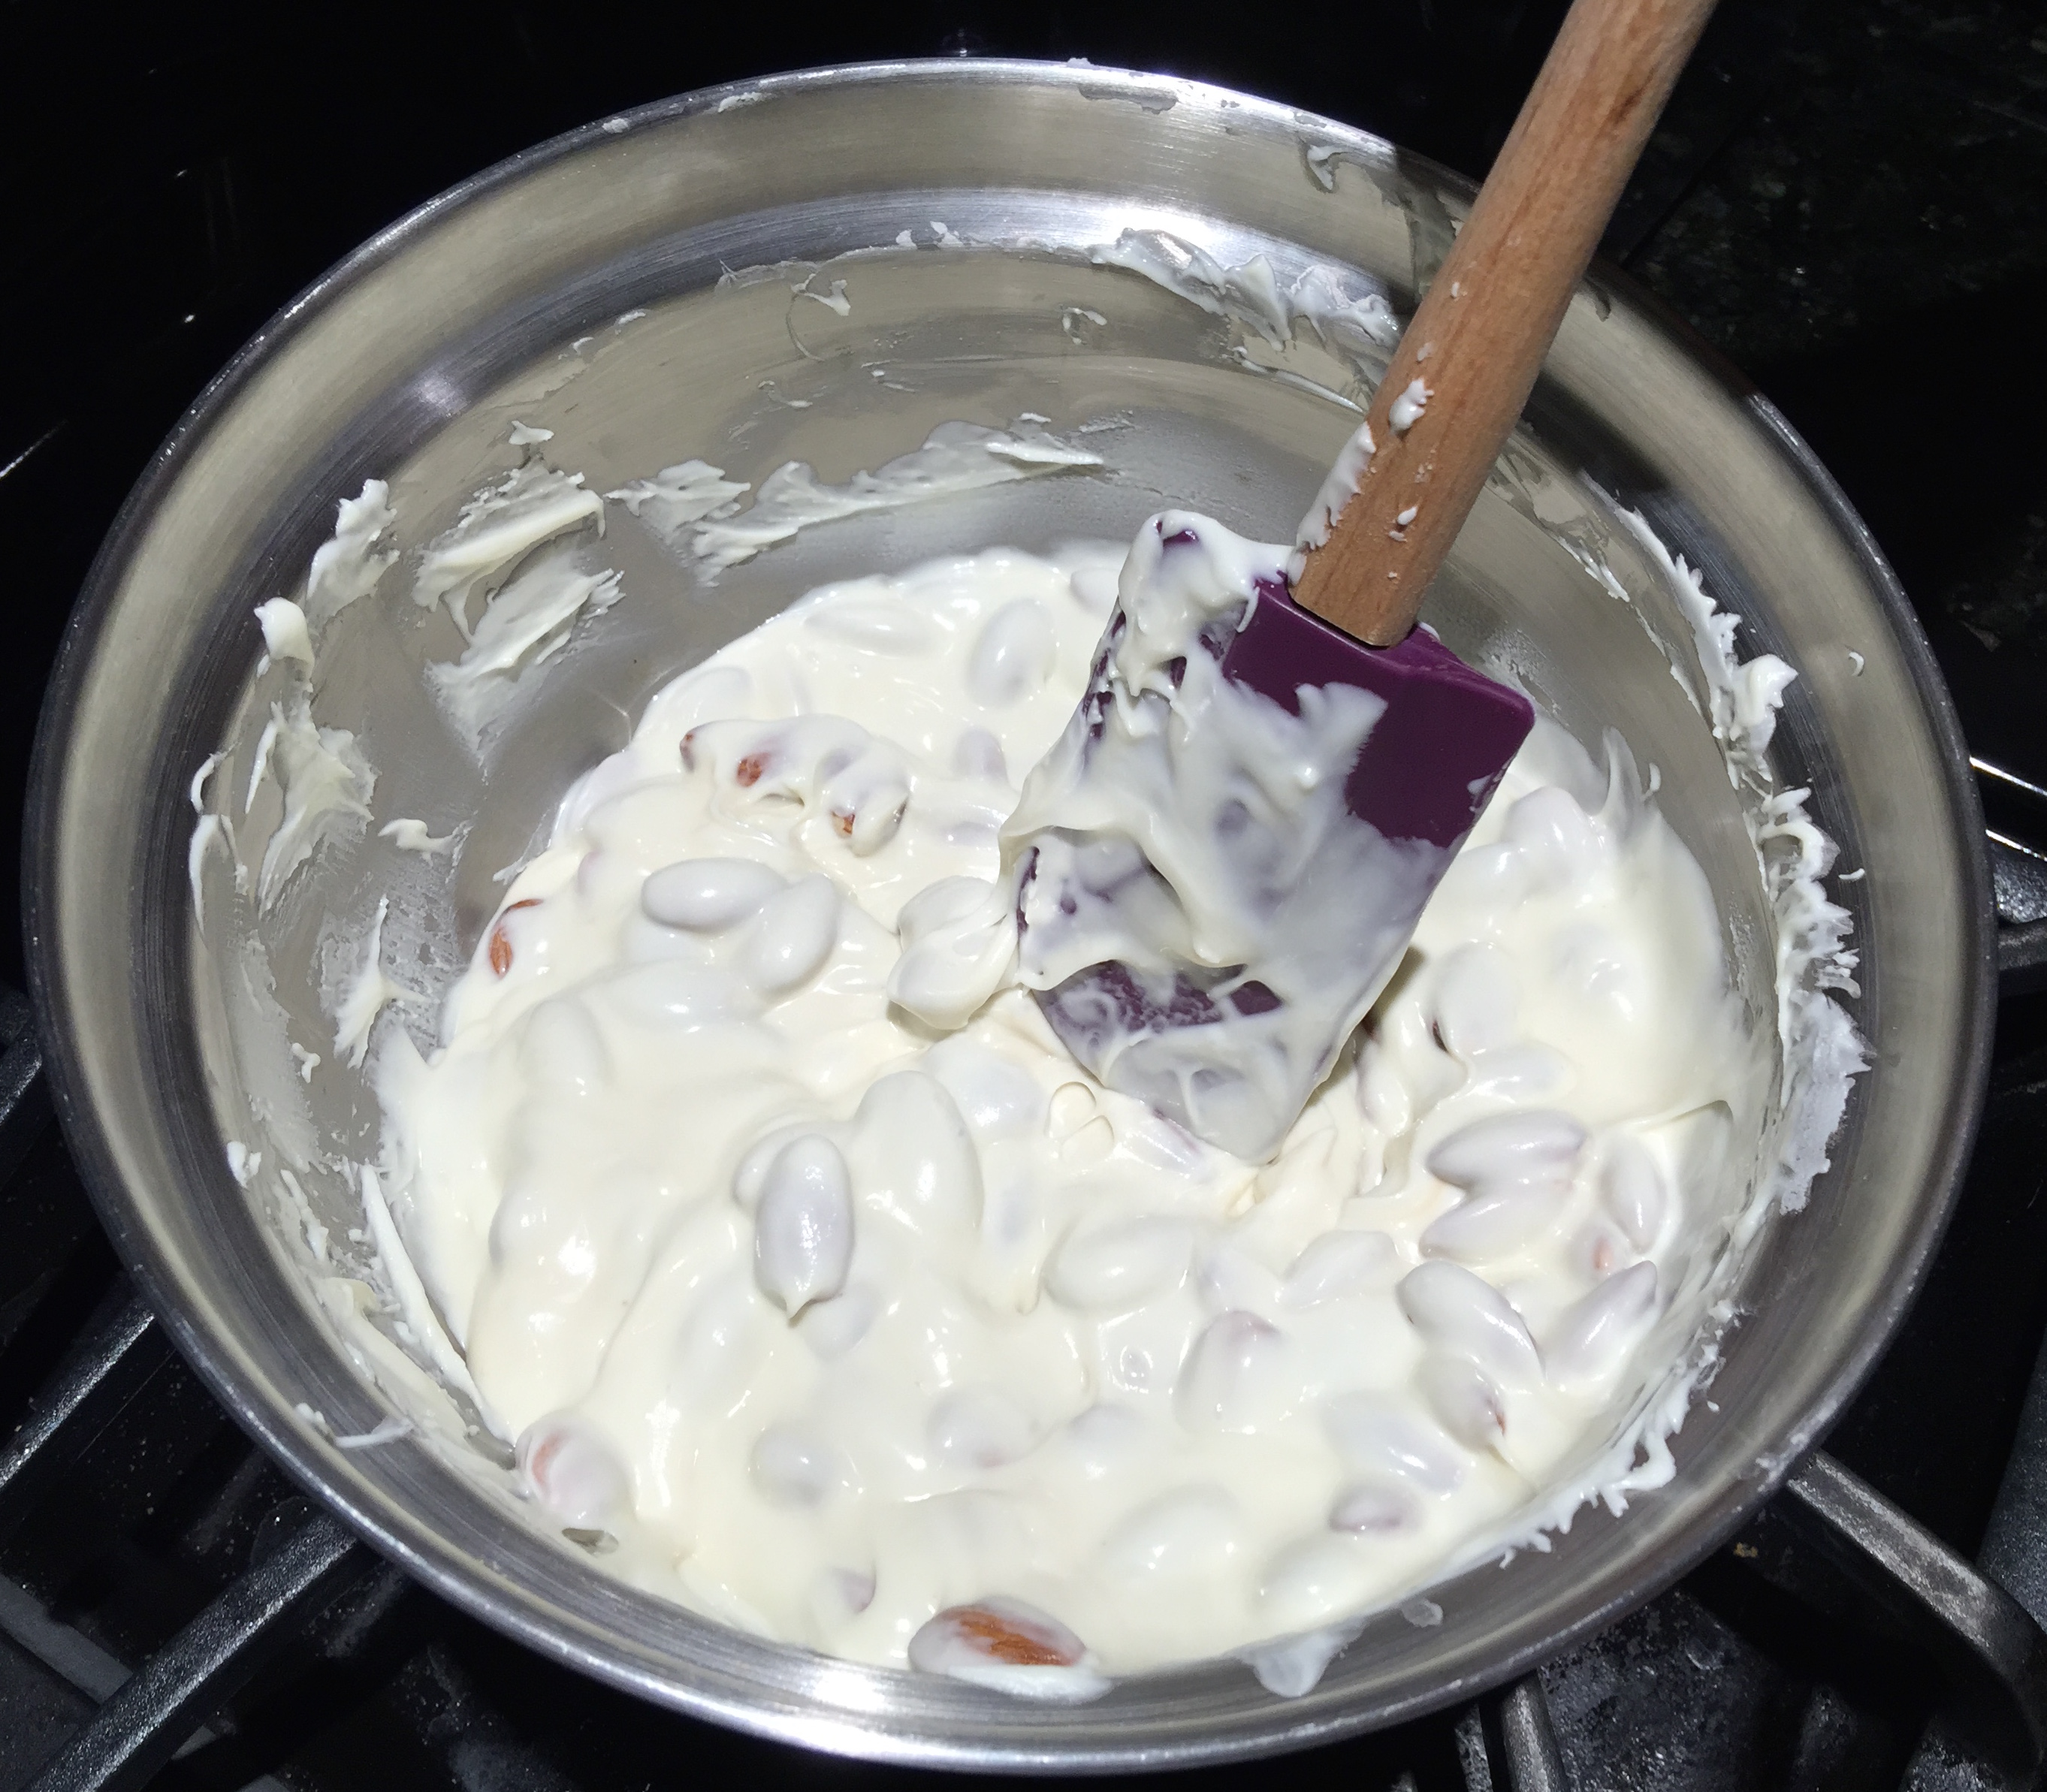 Mixing Almonds and White Chocolate